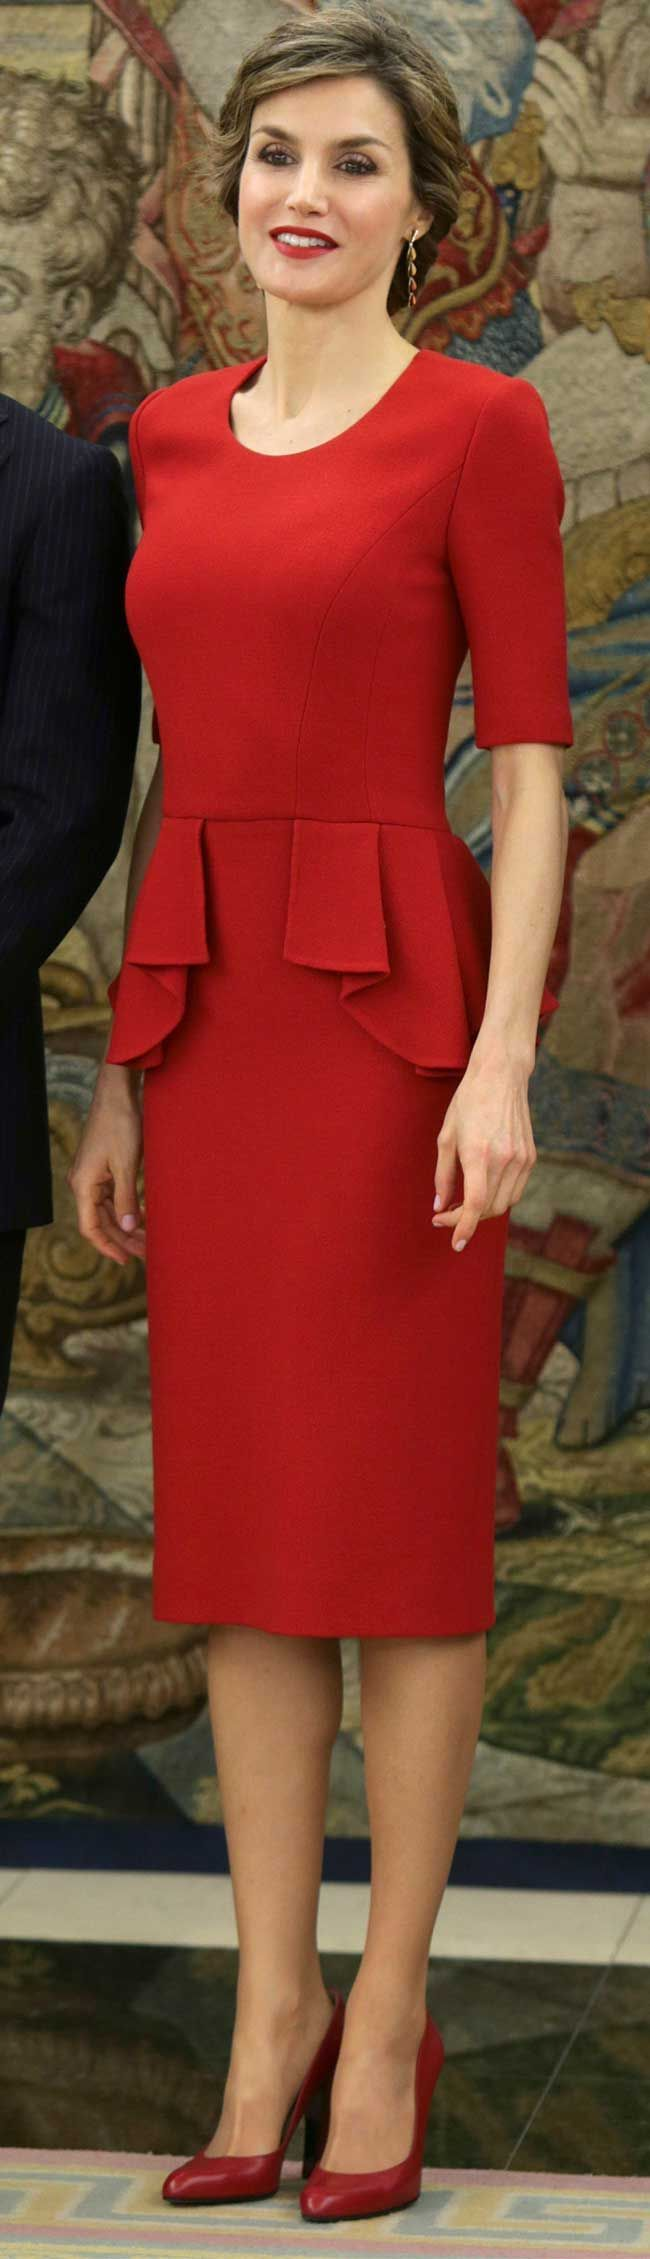 For both events (22 abril, 2016), Queen Letizia opted to recycle her red Carolina Herrera stretch-wool peplum dress. The dress made it's debut in October last year at the World Food Day ceremony in Milan.